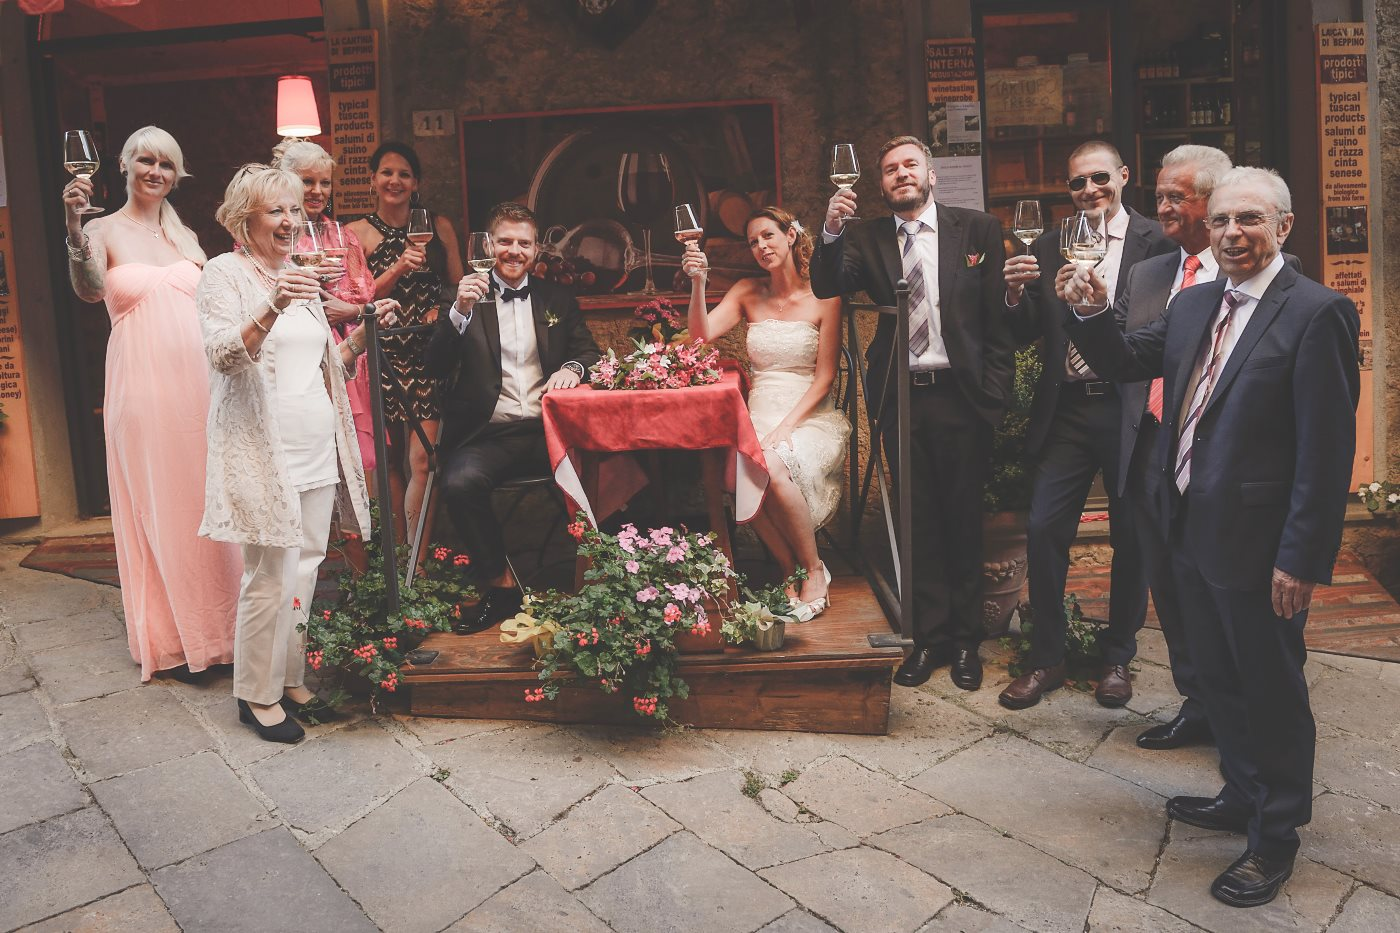 photographer_wedding_volterra_21.jpg